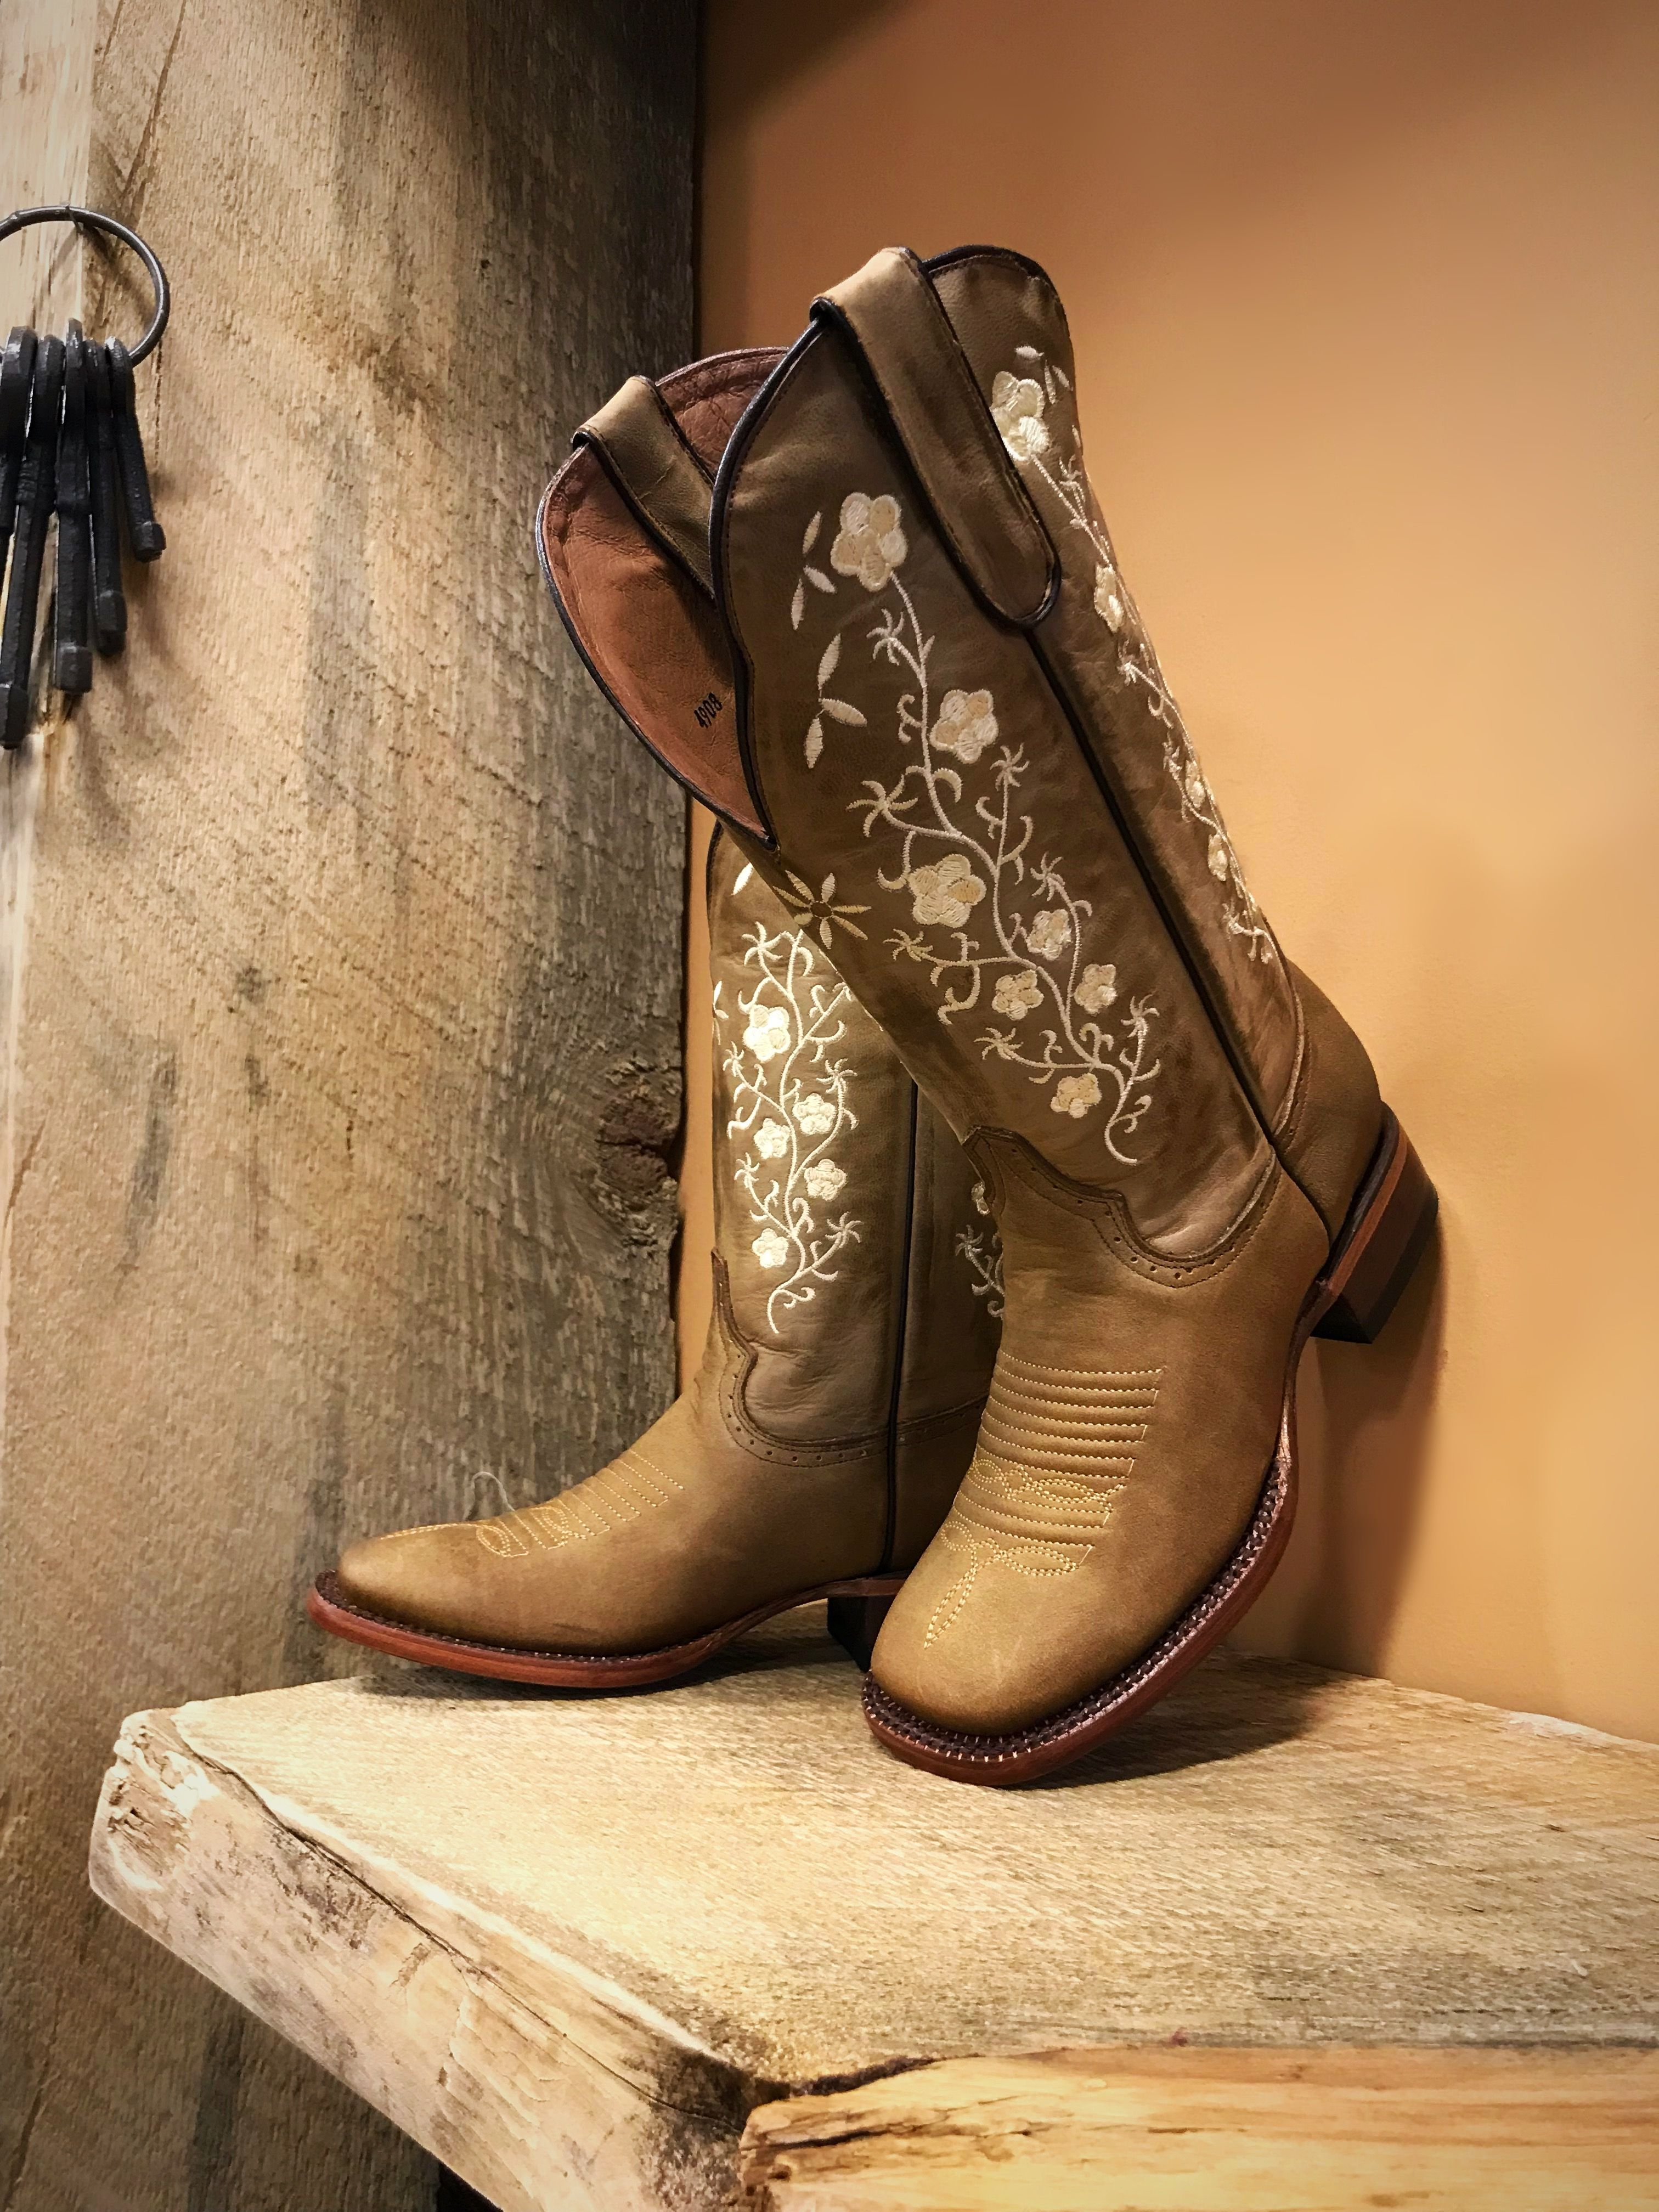 9005468b81d Women's Floral Embroidery Cowgirl Square Toe Boots ( Tan ) in 2019 ...